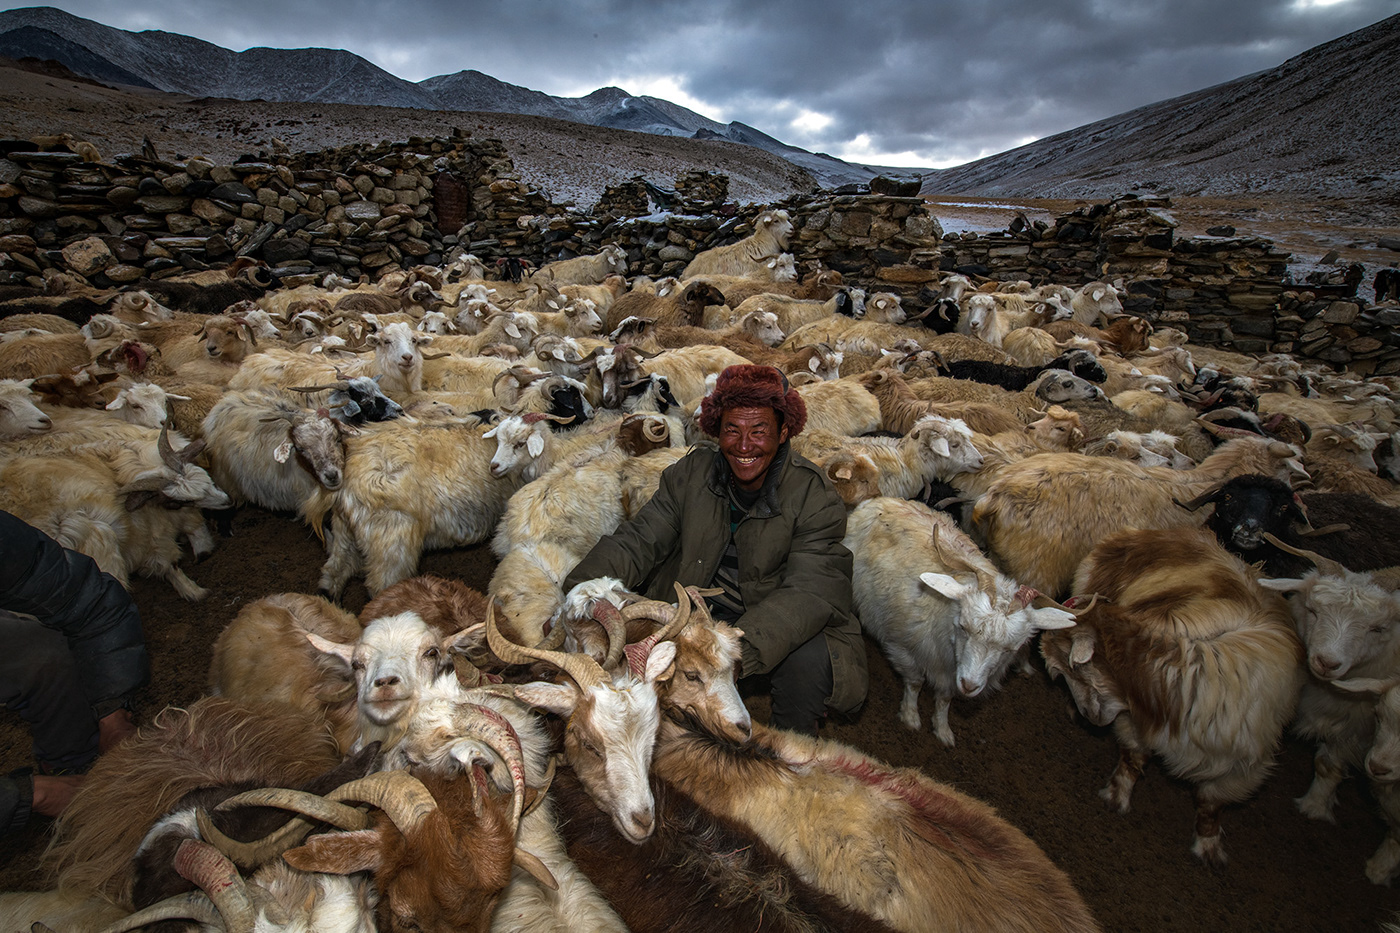 A changpa nomad, with his pashmina sheep at 5,200 metres in the iNdian Himalayas in Ladakh